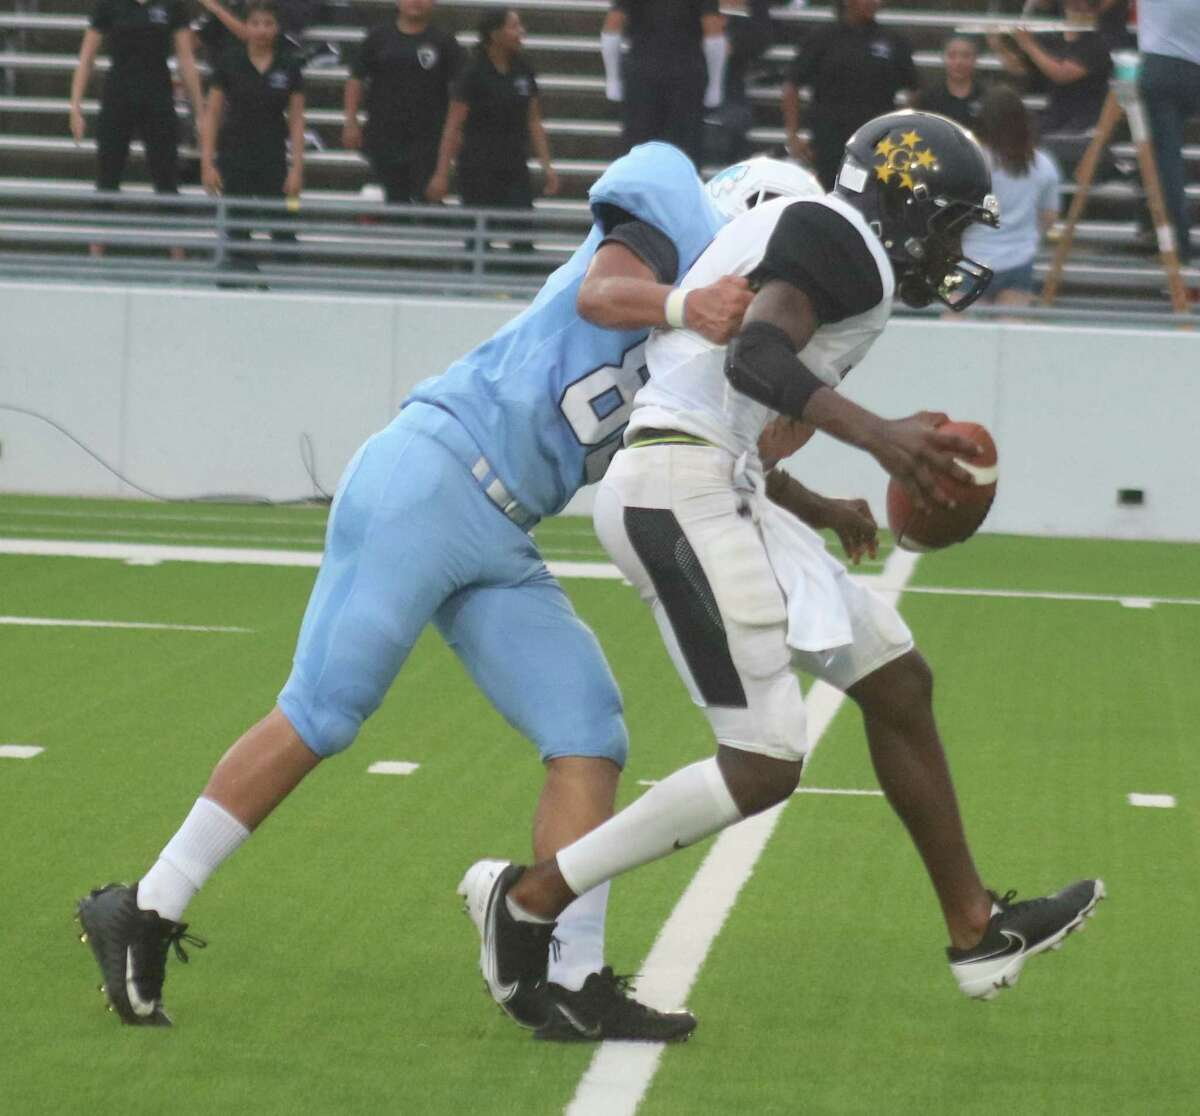 A Sam Rayburn defender sacks Houston Wisdom quarterback John Nsenguwera. The defense finished with a two-quarter shutout, just Rayburn's fifth shutout on opening night in 58 years.